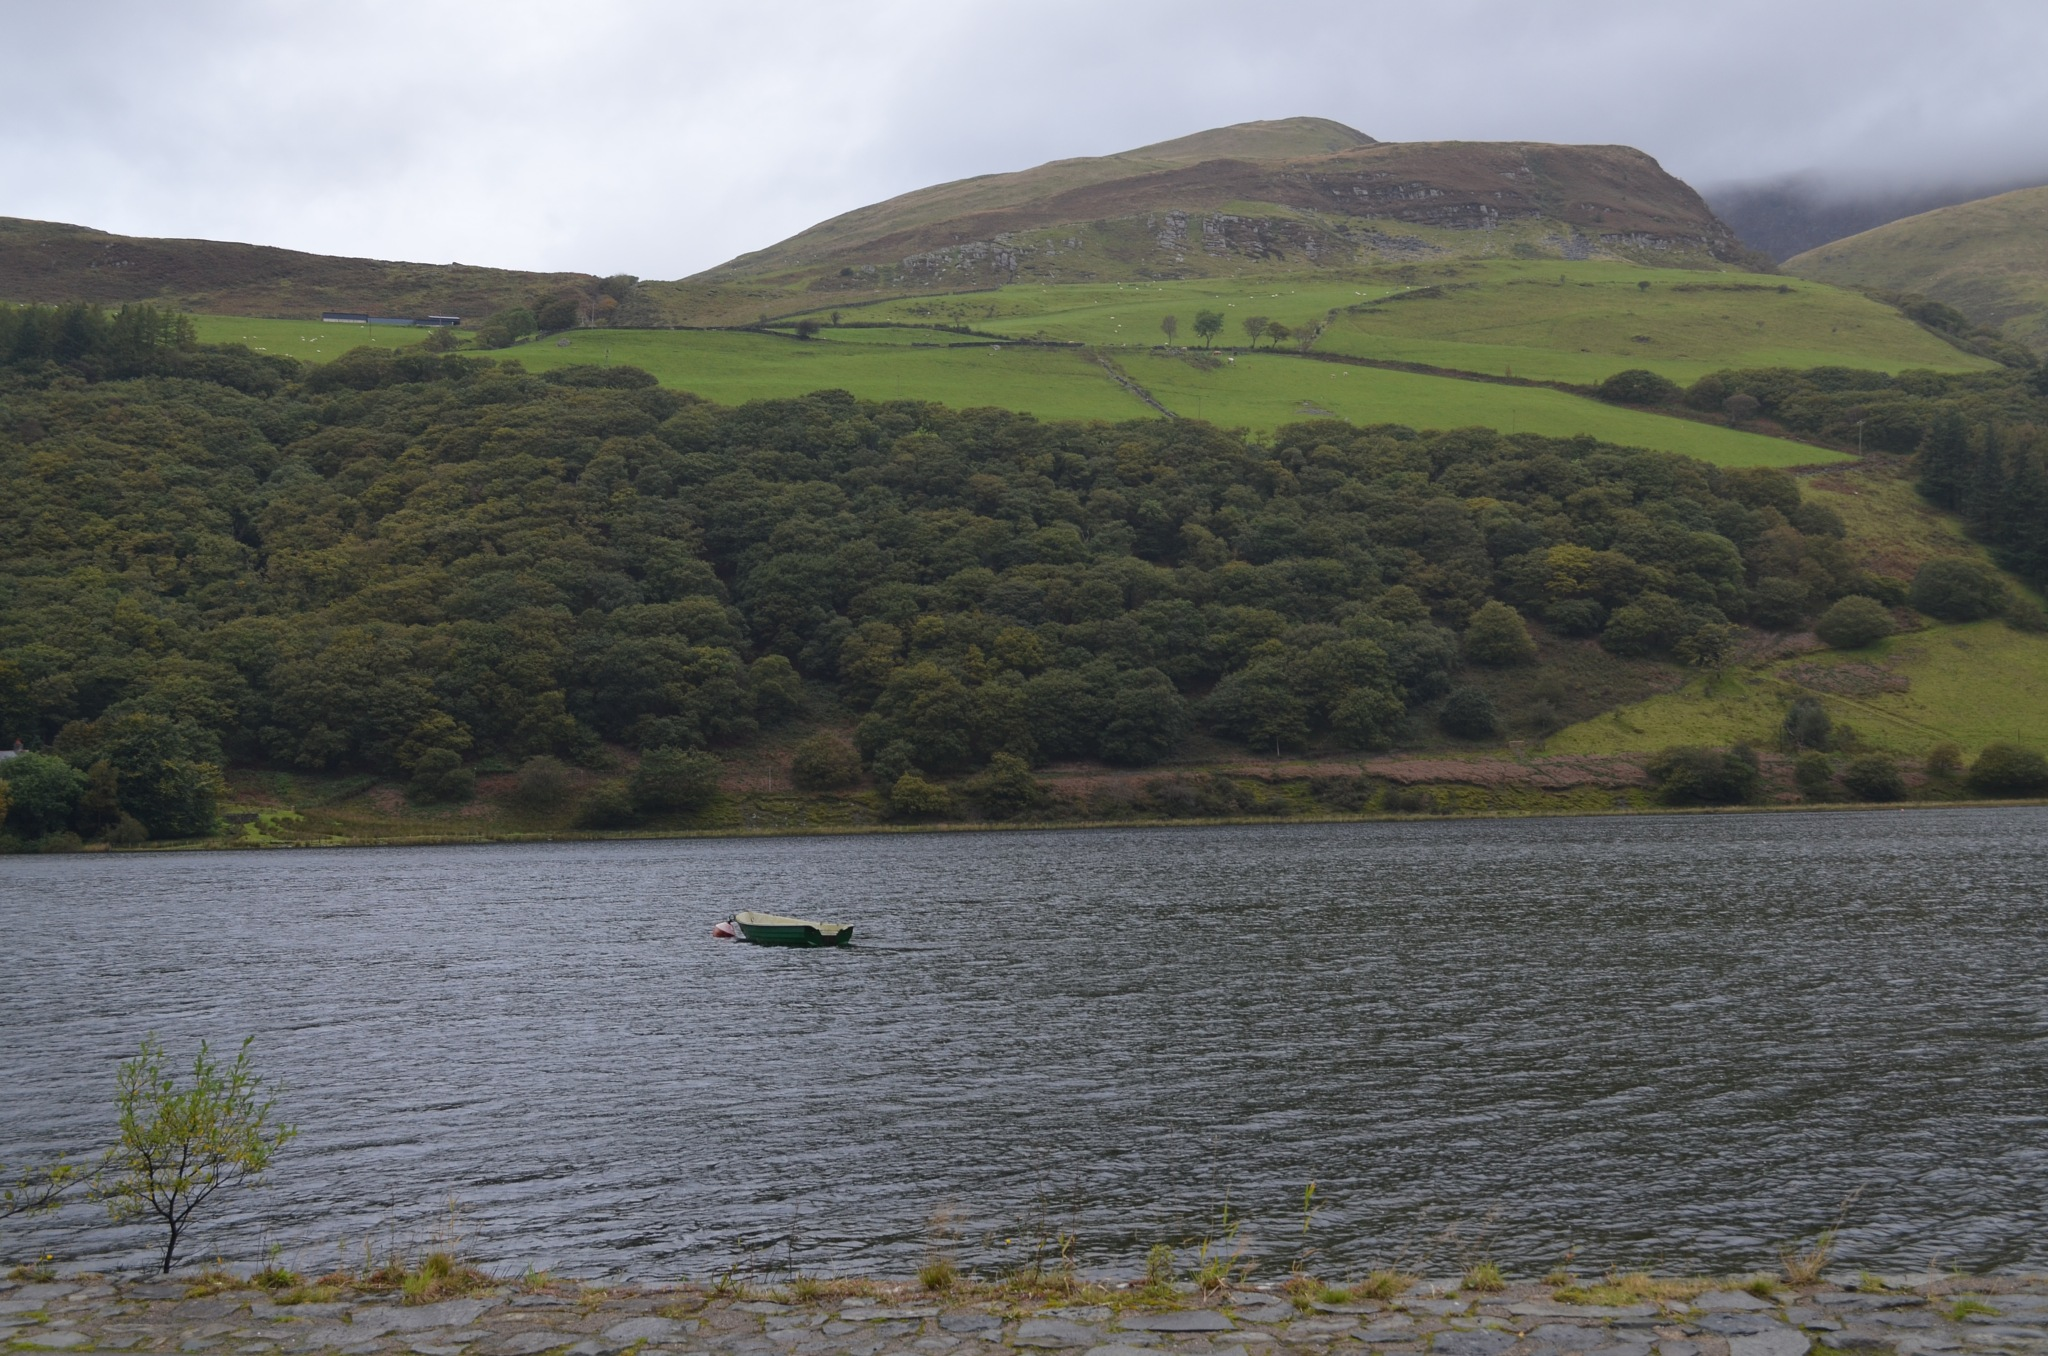 boat on Talyllyn by adrian.williams.58323